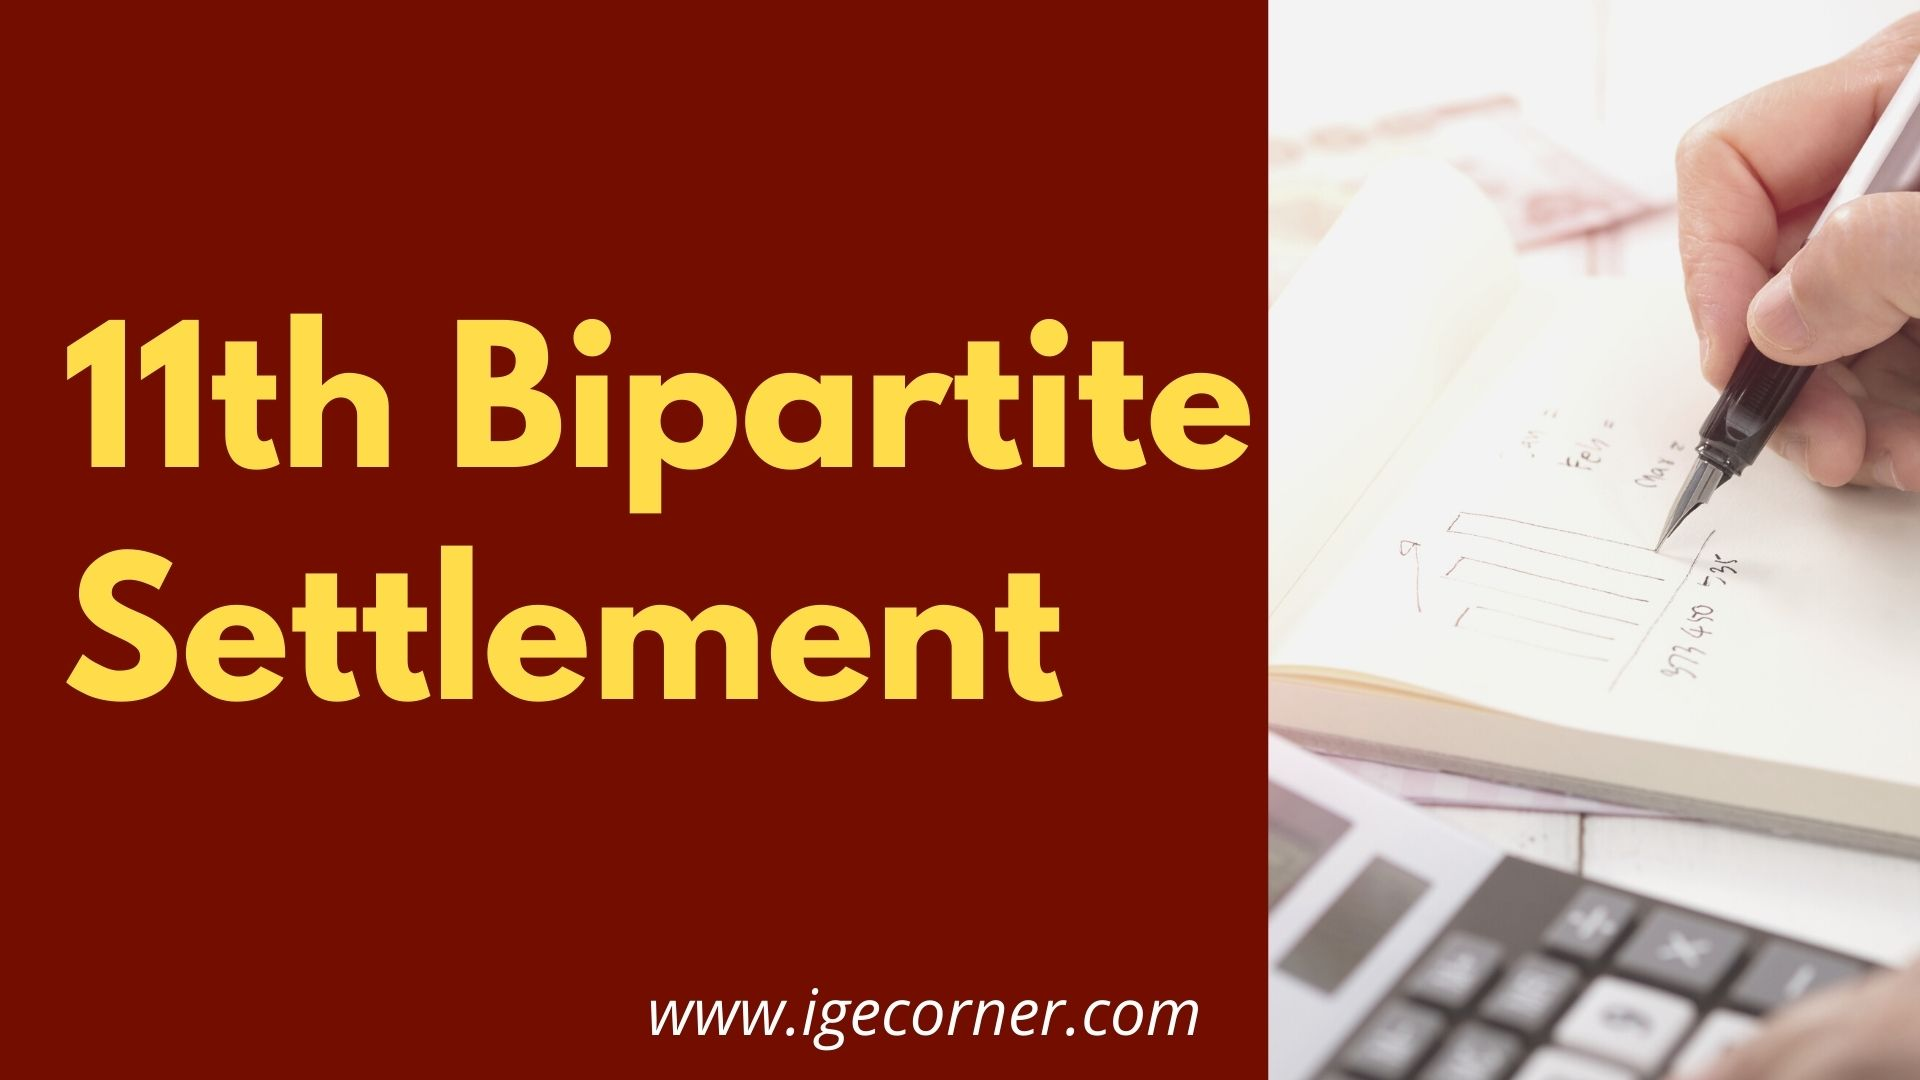 Bipartite Settlement